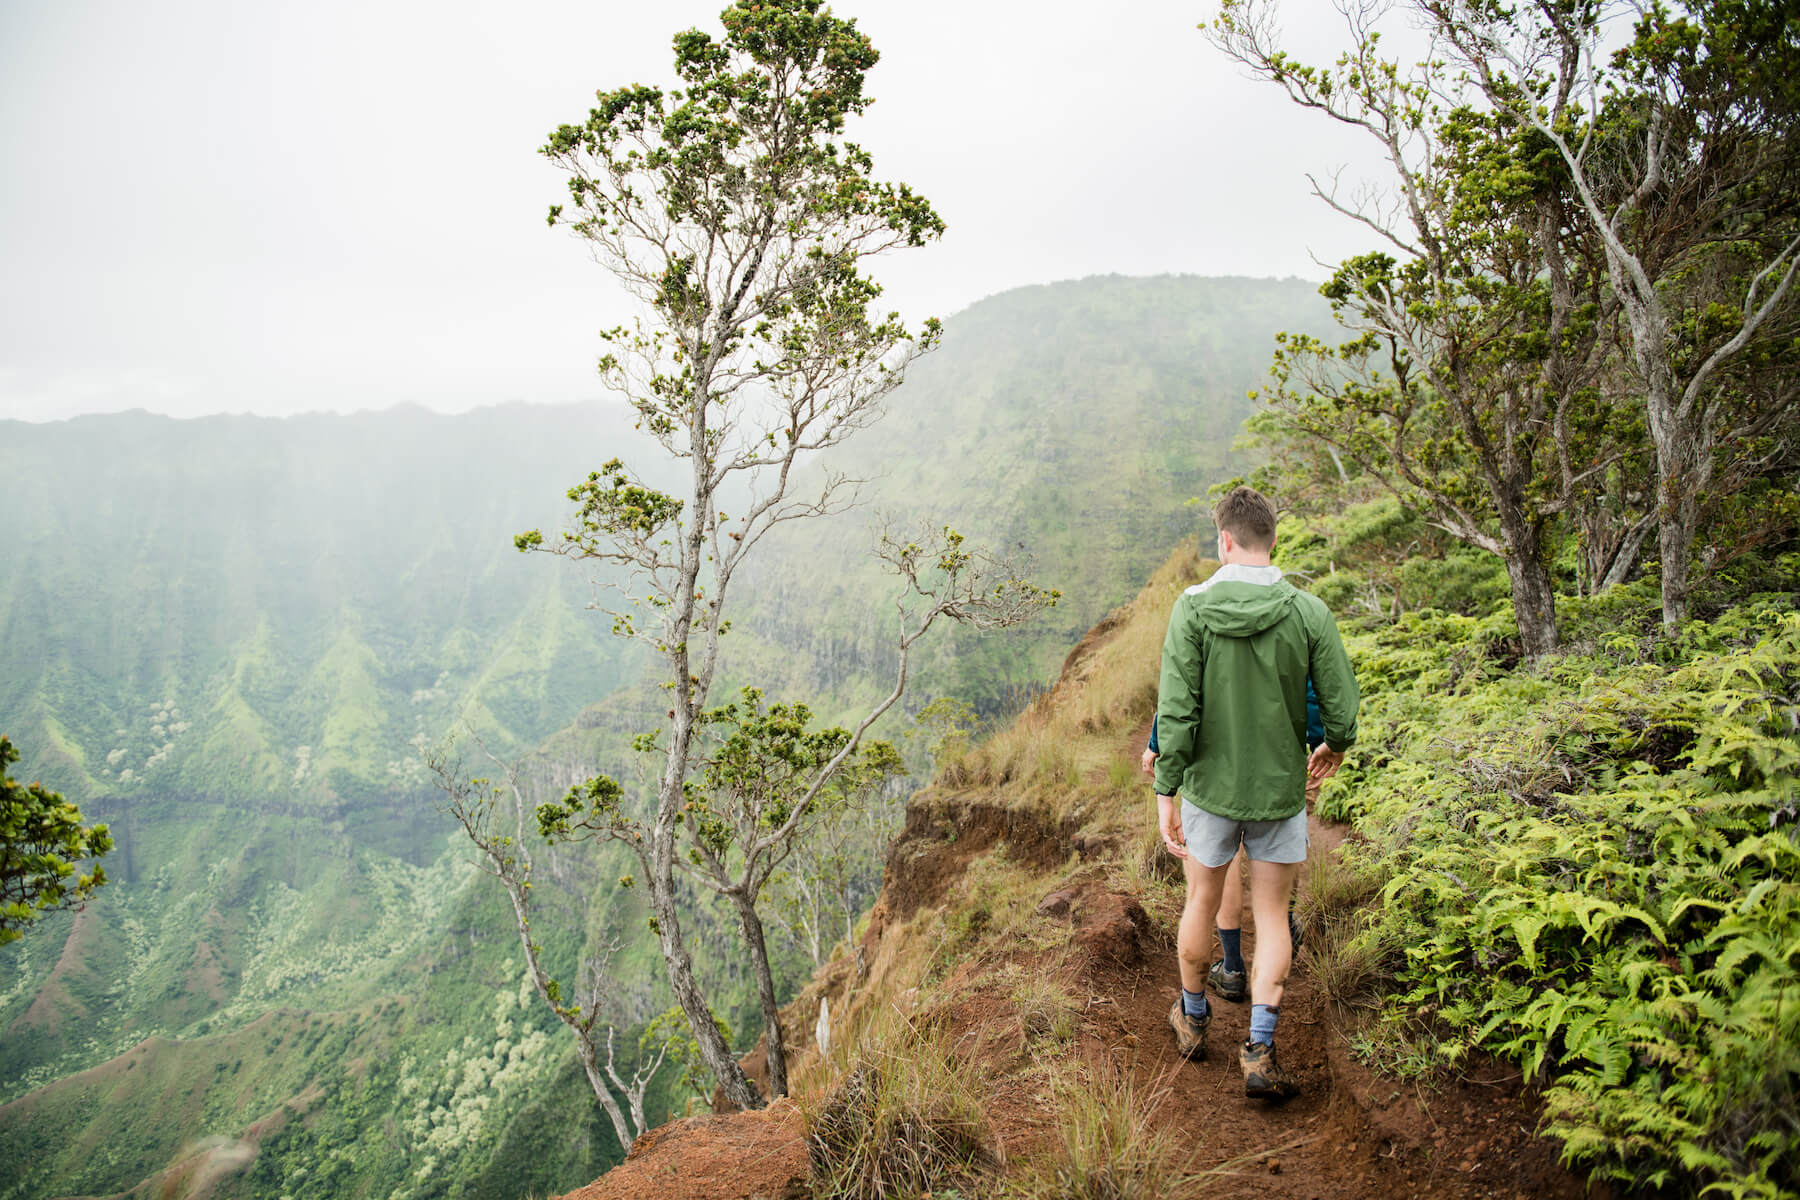 Guys on a hike in Kauai Hawaii monutian